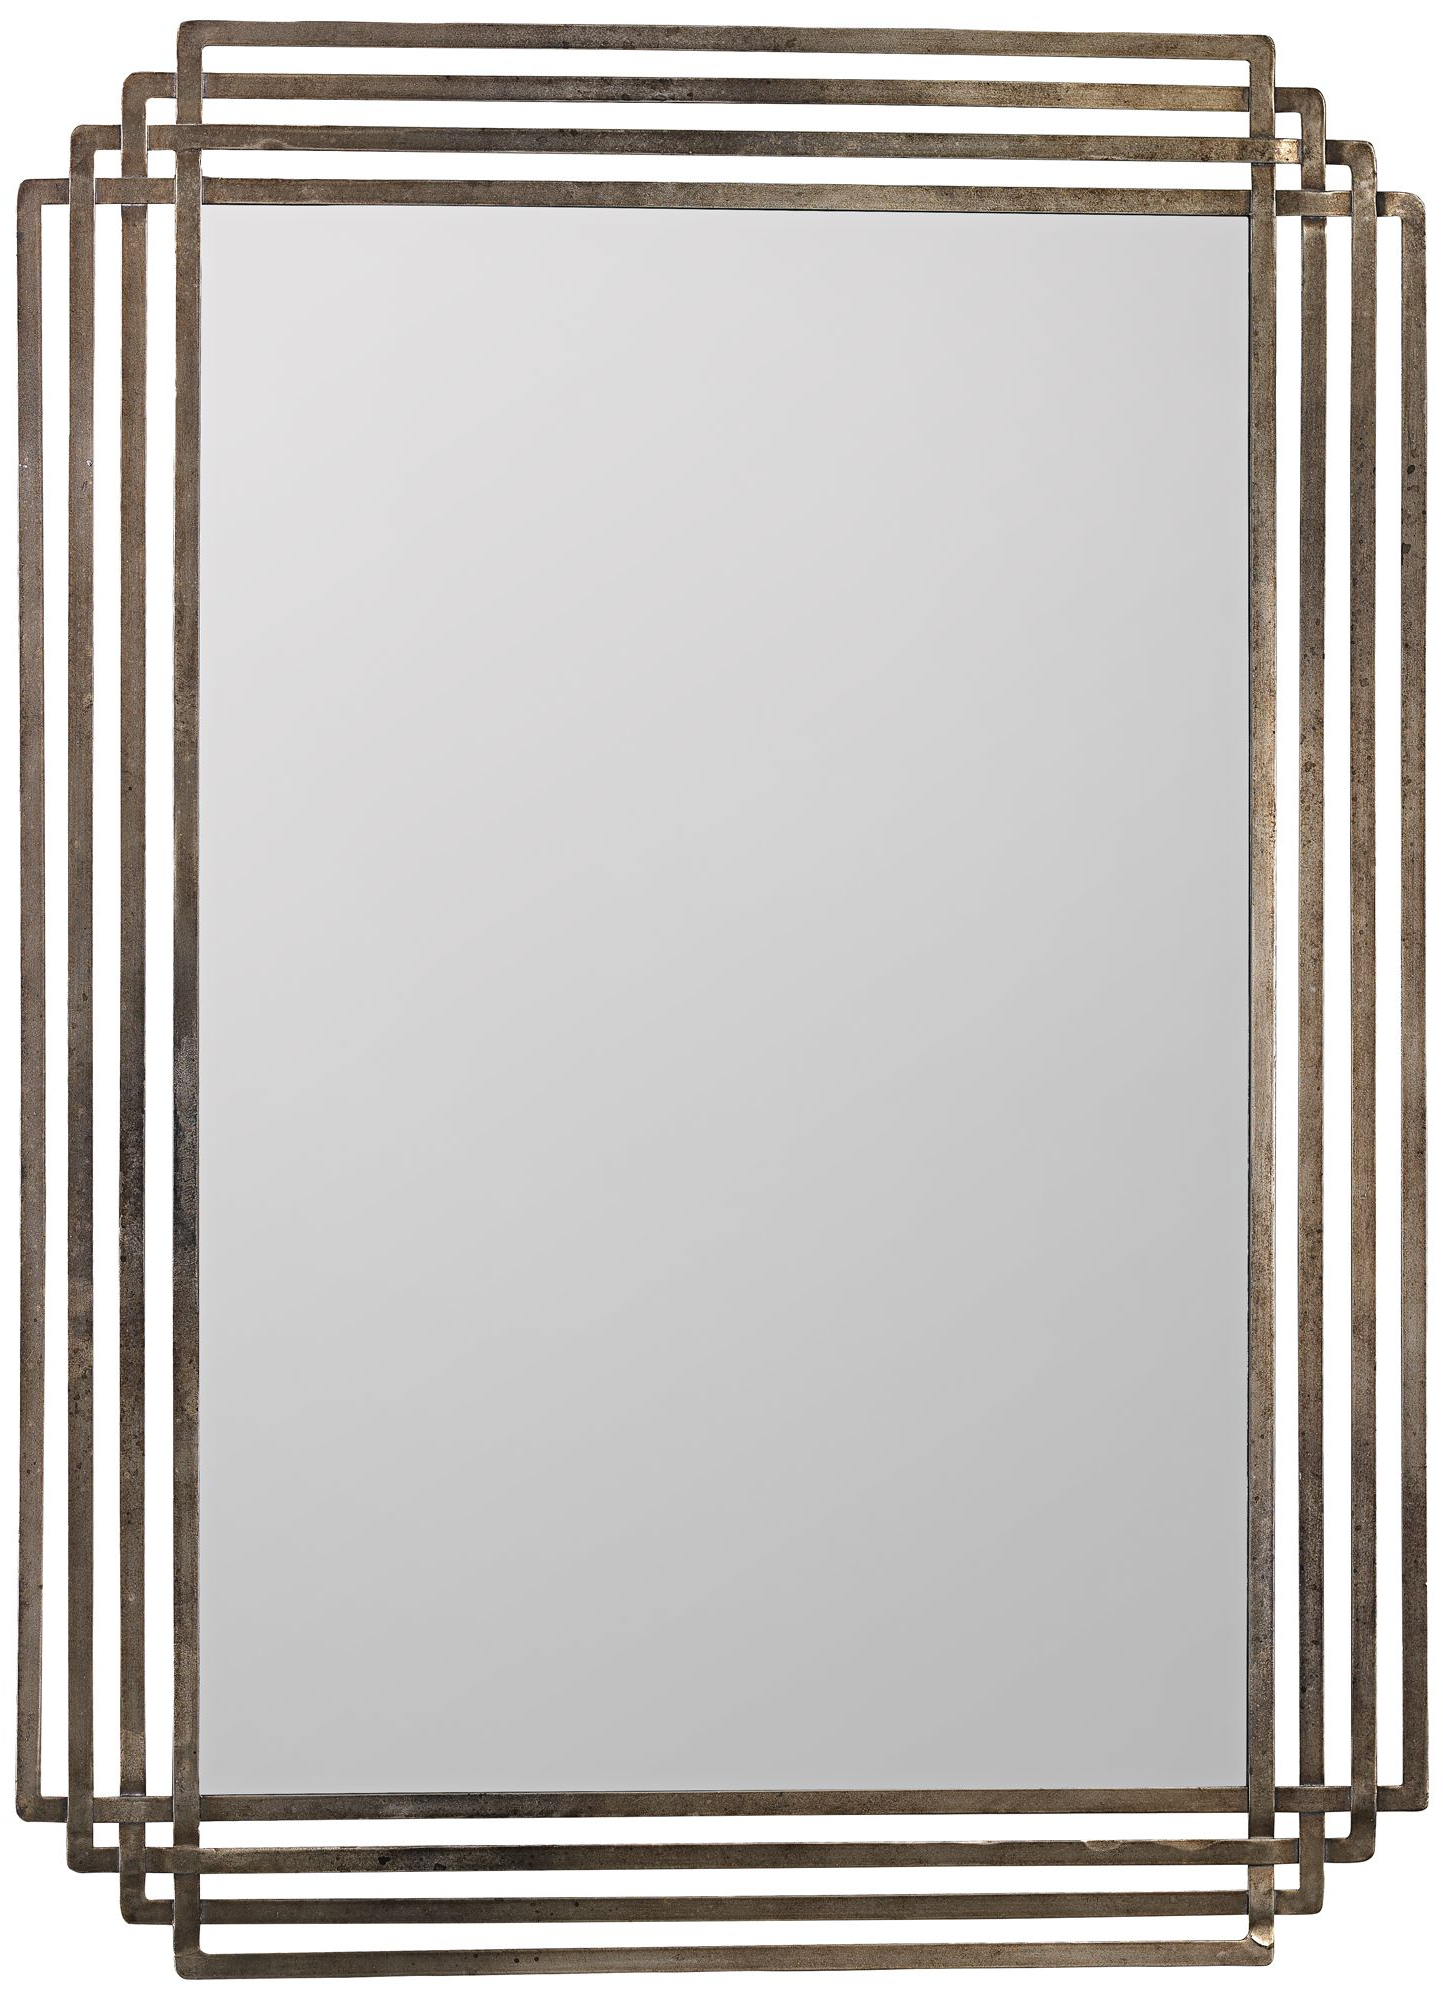 Most Recent Janie Rectangular Wall Mirrors Inside Wall Mirrors Large Jamie Young Serai Antique Silver 36 Lamps Plus (View 11 of 20)